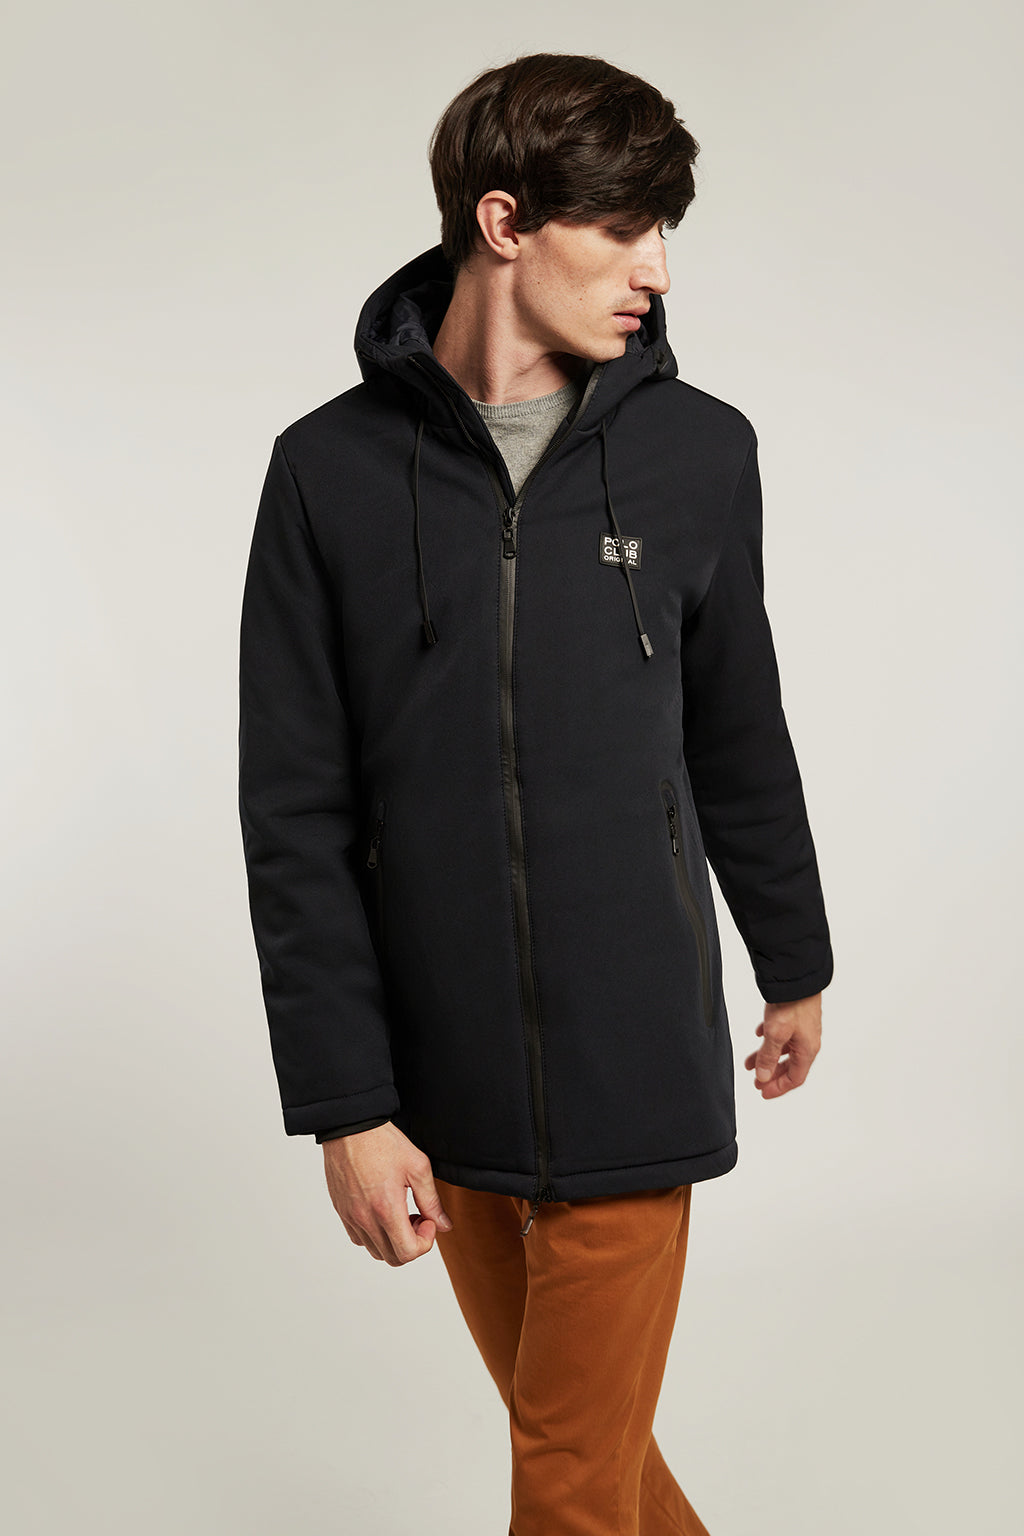 Navy blue technical parka with patch